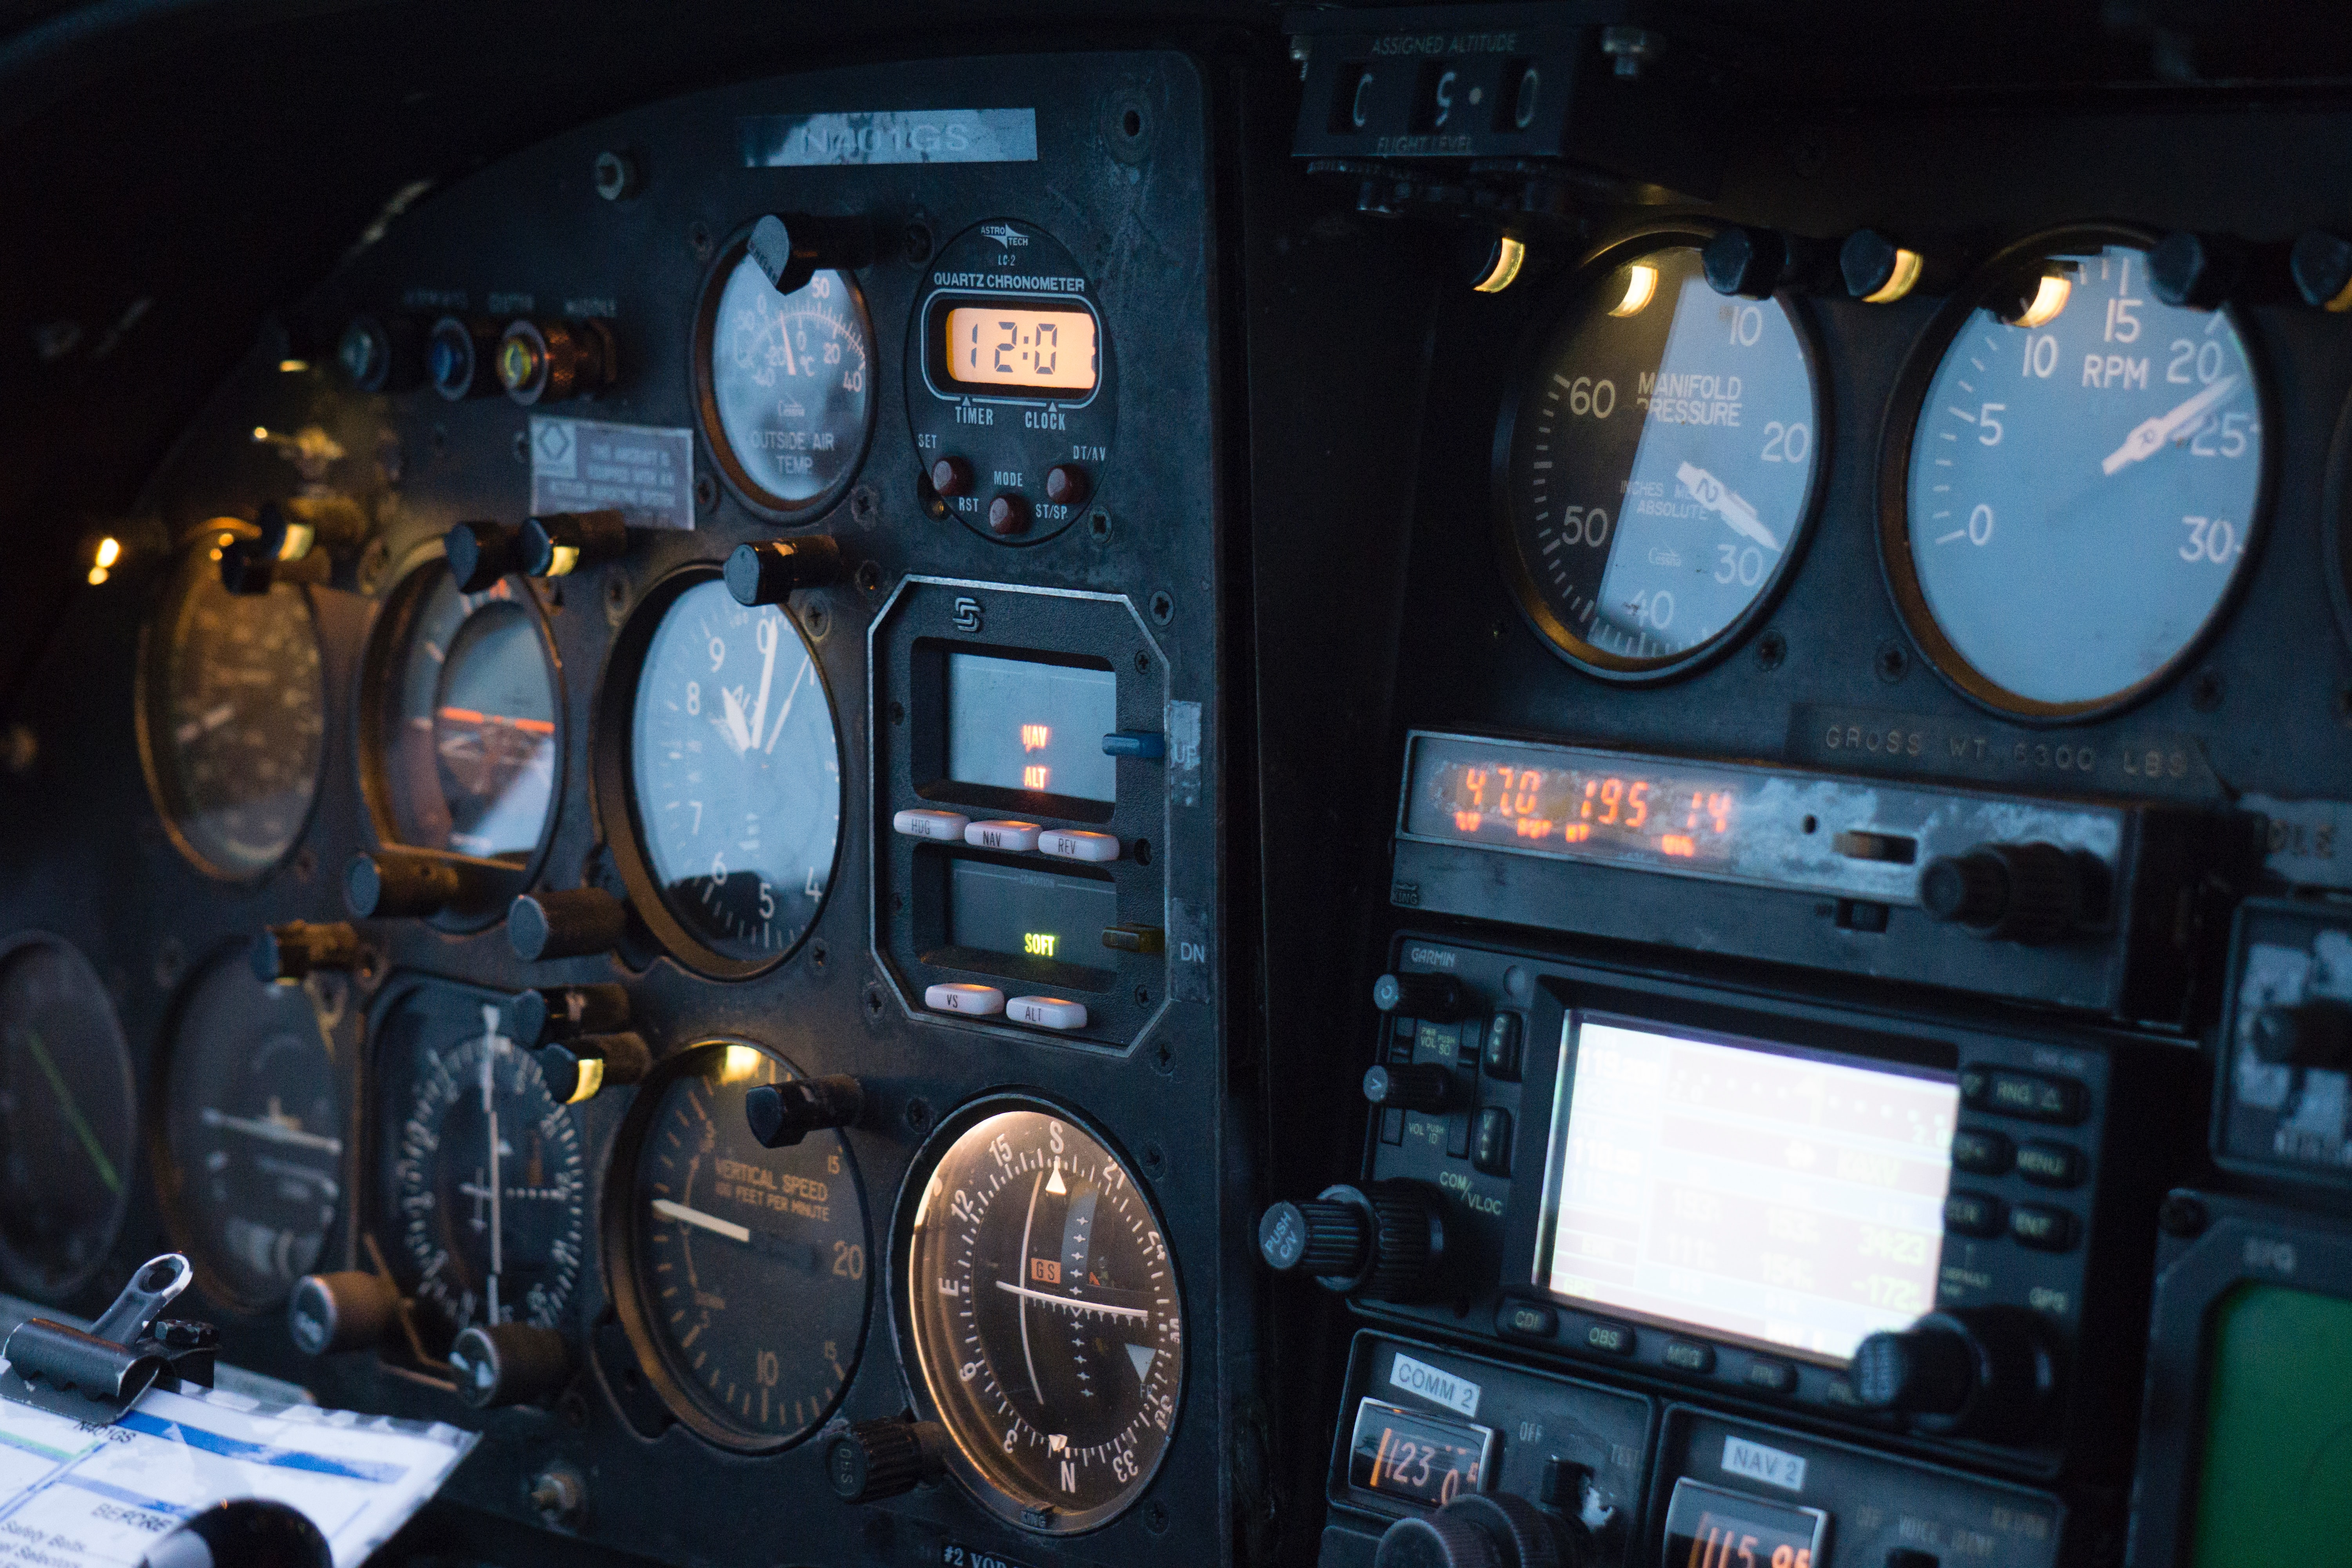 A metrics dashboard is like a plane's instruments